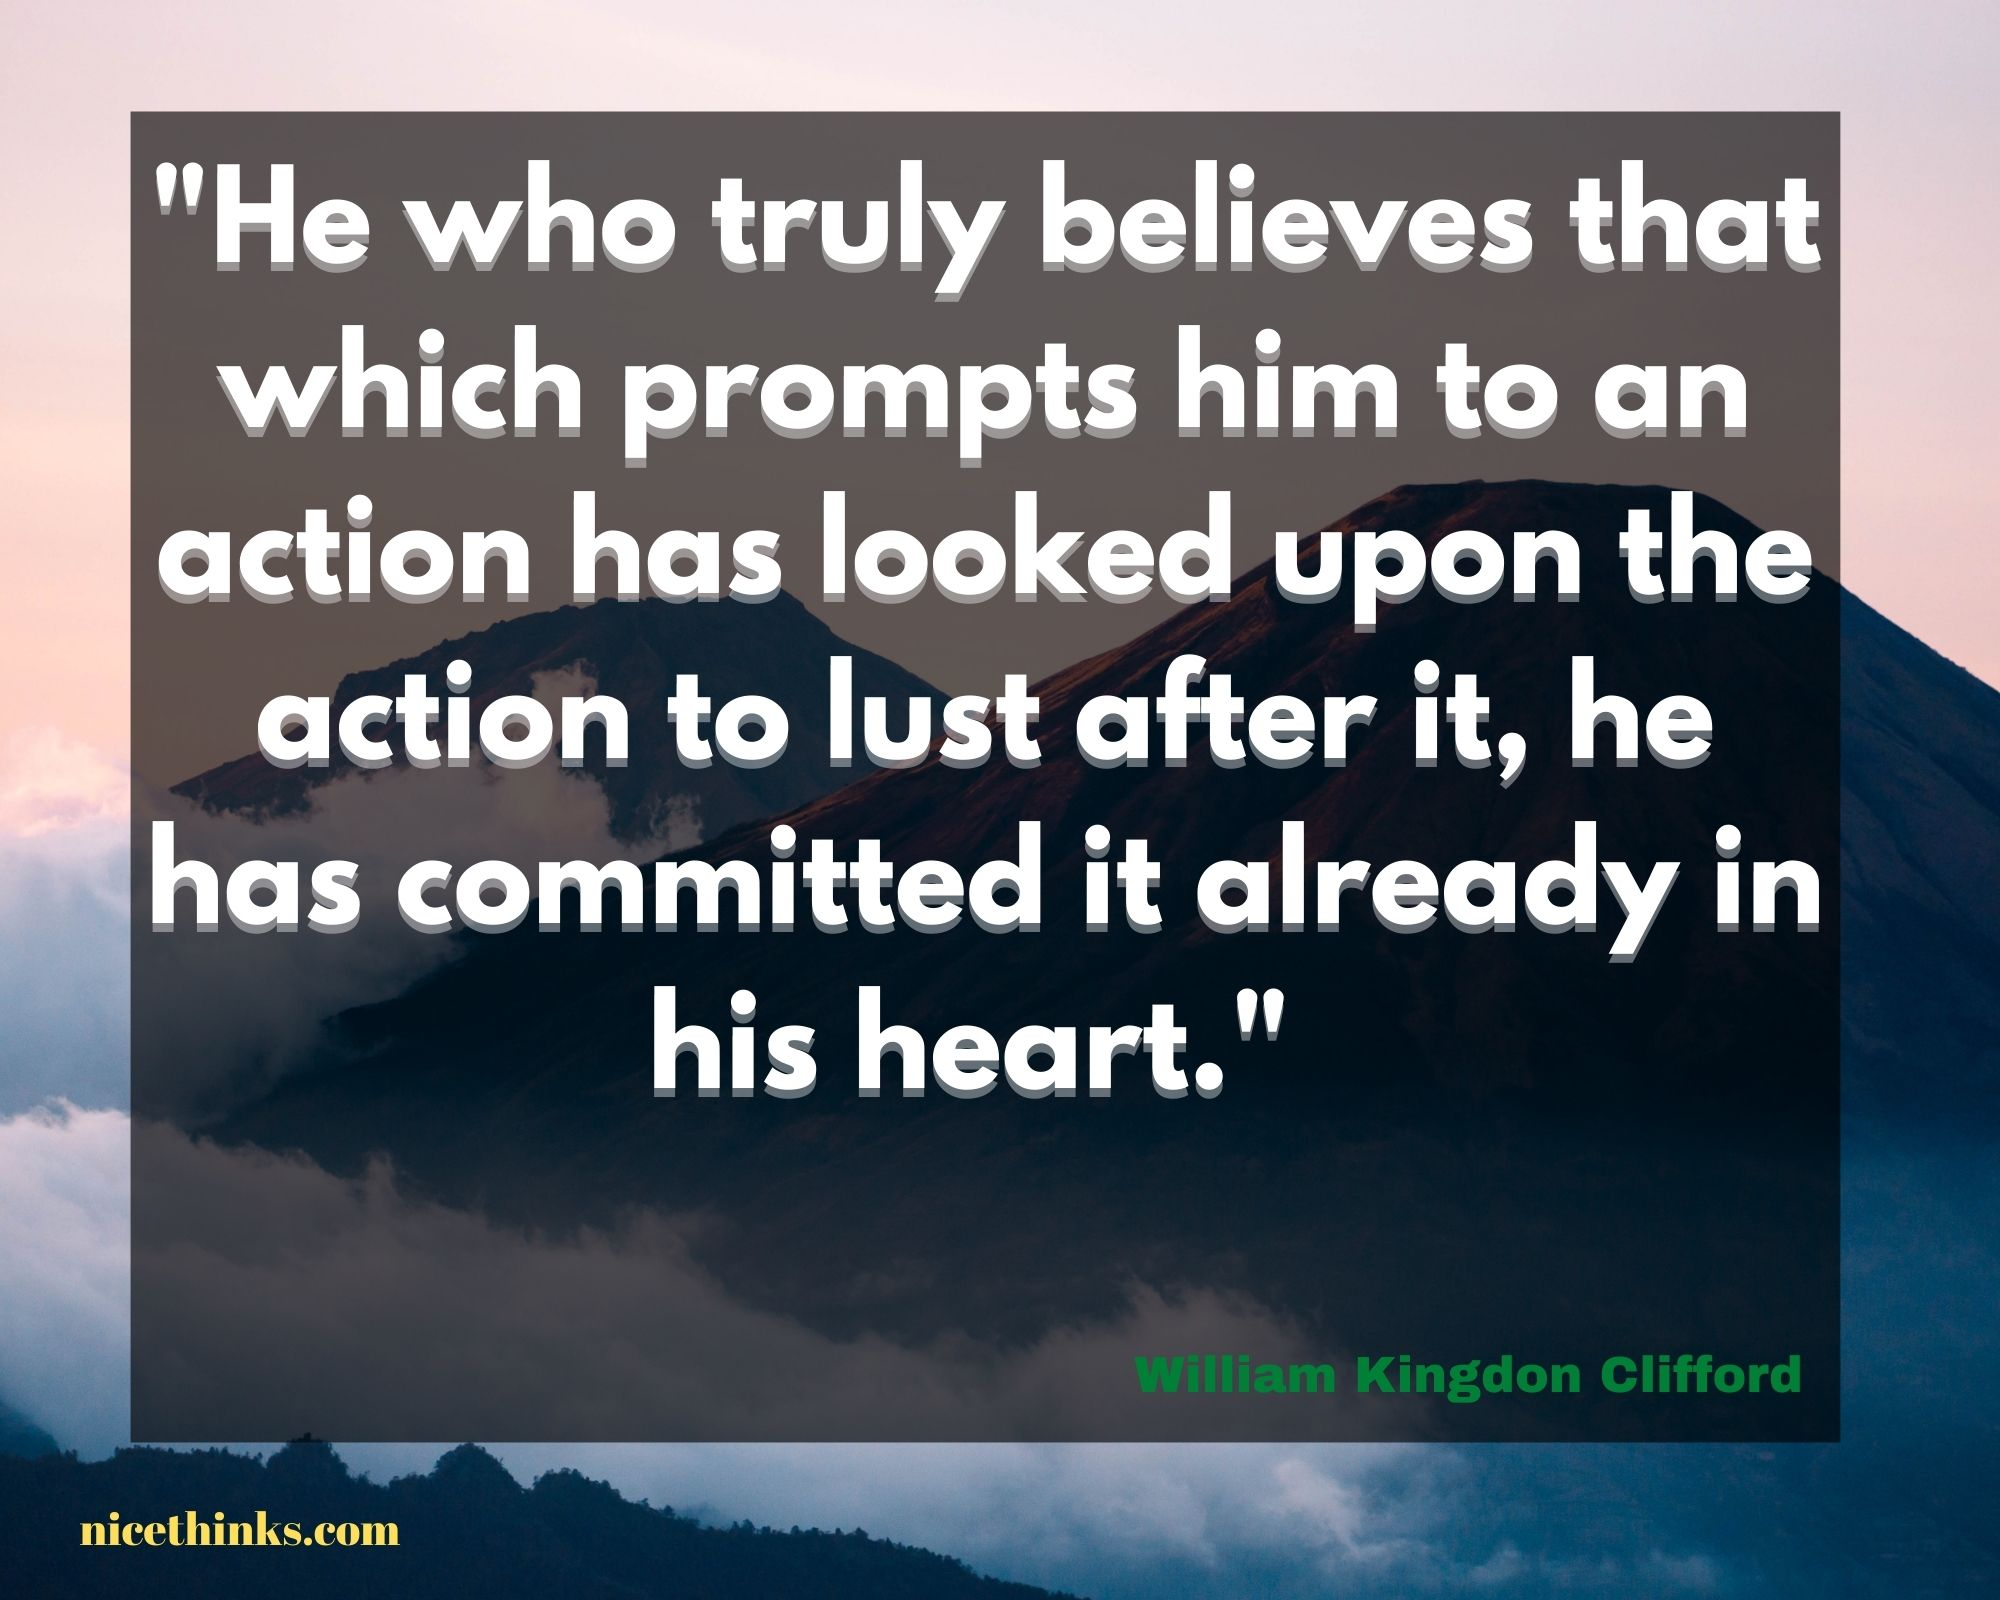 Quote by William Kingdon Clifford